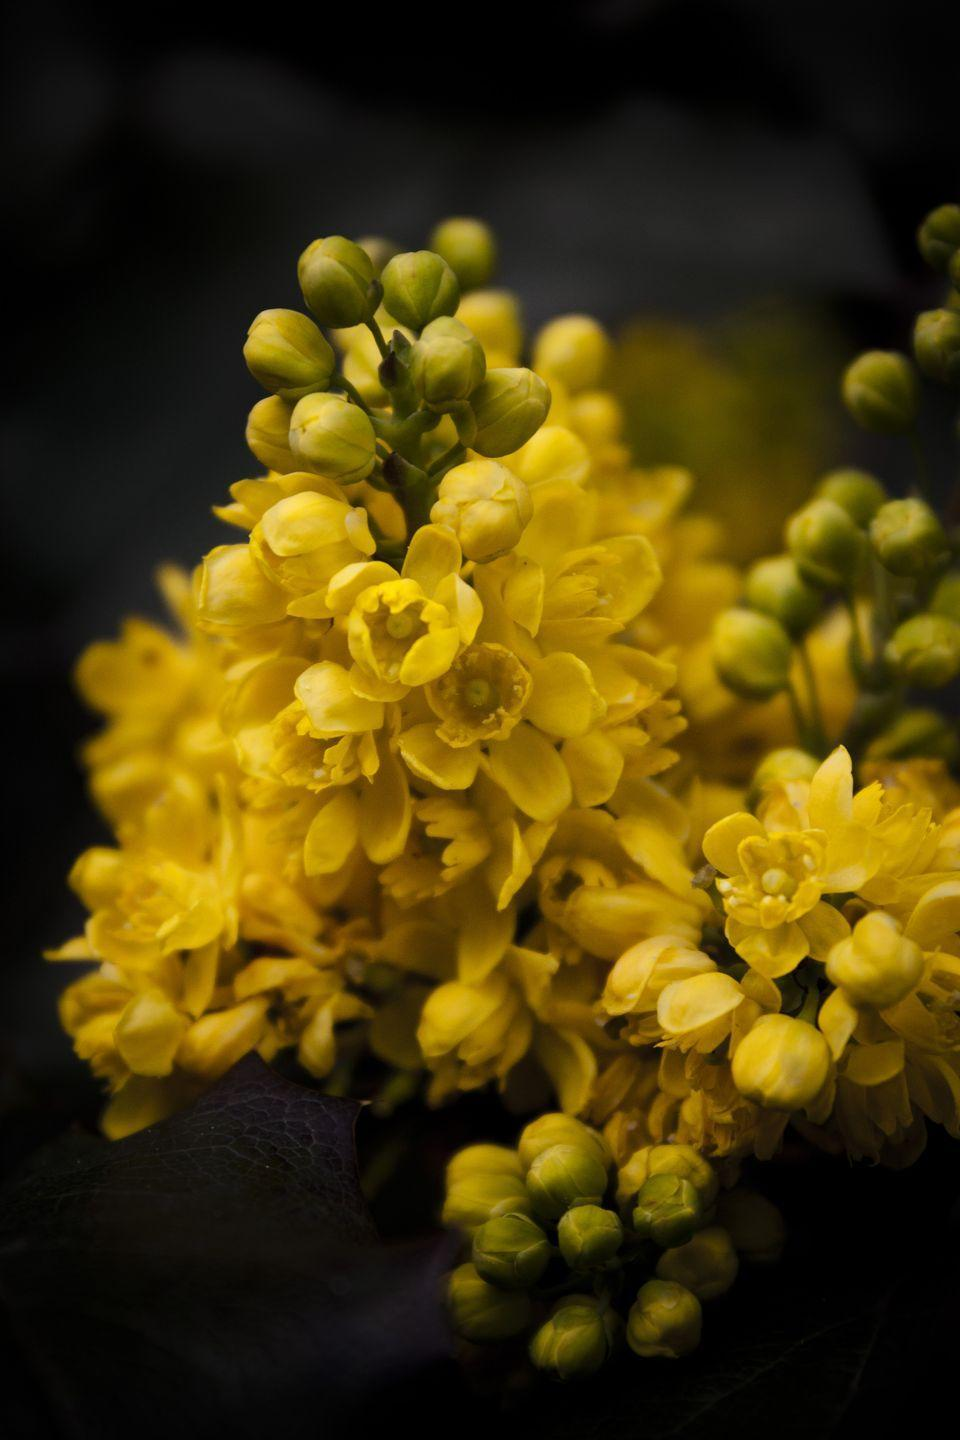 """<p>The <a href=""""https://statesymbolsusa.org/symbol-official-item/oregon/state-flower/oregon-grape"""" rel=""""nofollow noopener"""" target=""""_blank"""" data-ylk=""""slk:Oregon grape"""" class=""""link rapid-noclick-resp"""">Oregon grape</a> has tiny, yellow flowers and bears a bitter, blue fruit. Hey, at least it can be used medicinally.</p>"""